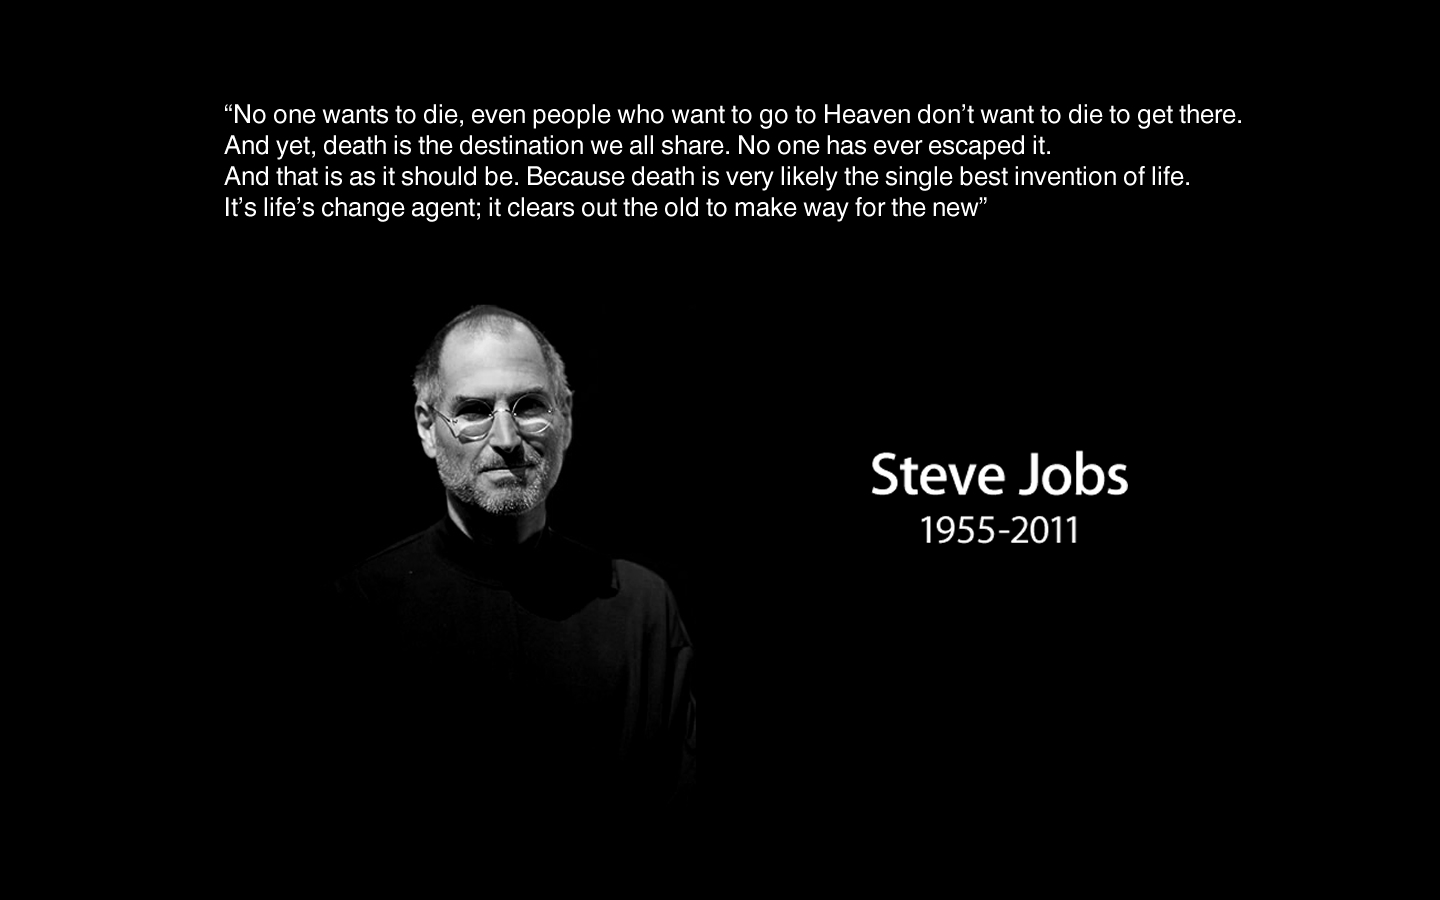 steve jobs influencial career Steve jobs, the co-founder of apple, is considered by many as one of the most influential minds in the technology industry through a plethora of apple keynote presentations as well as speeches, jobs was able to share his passion with others.